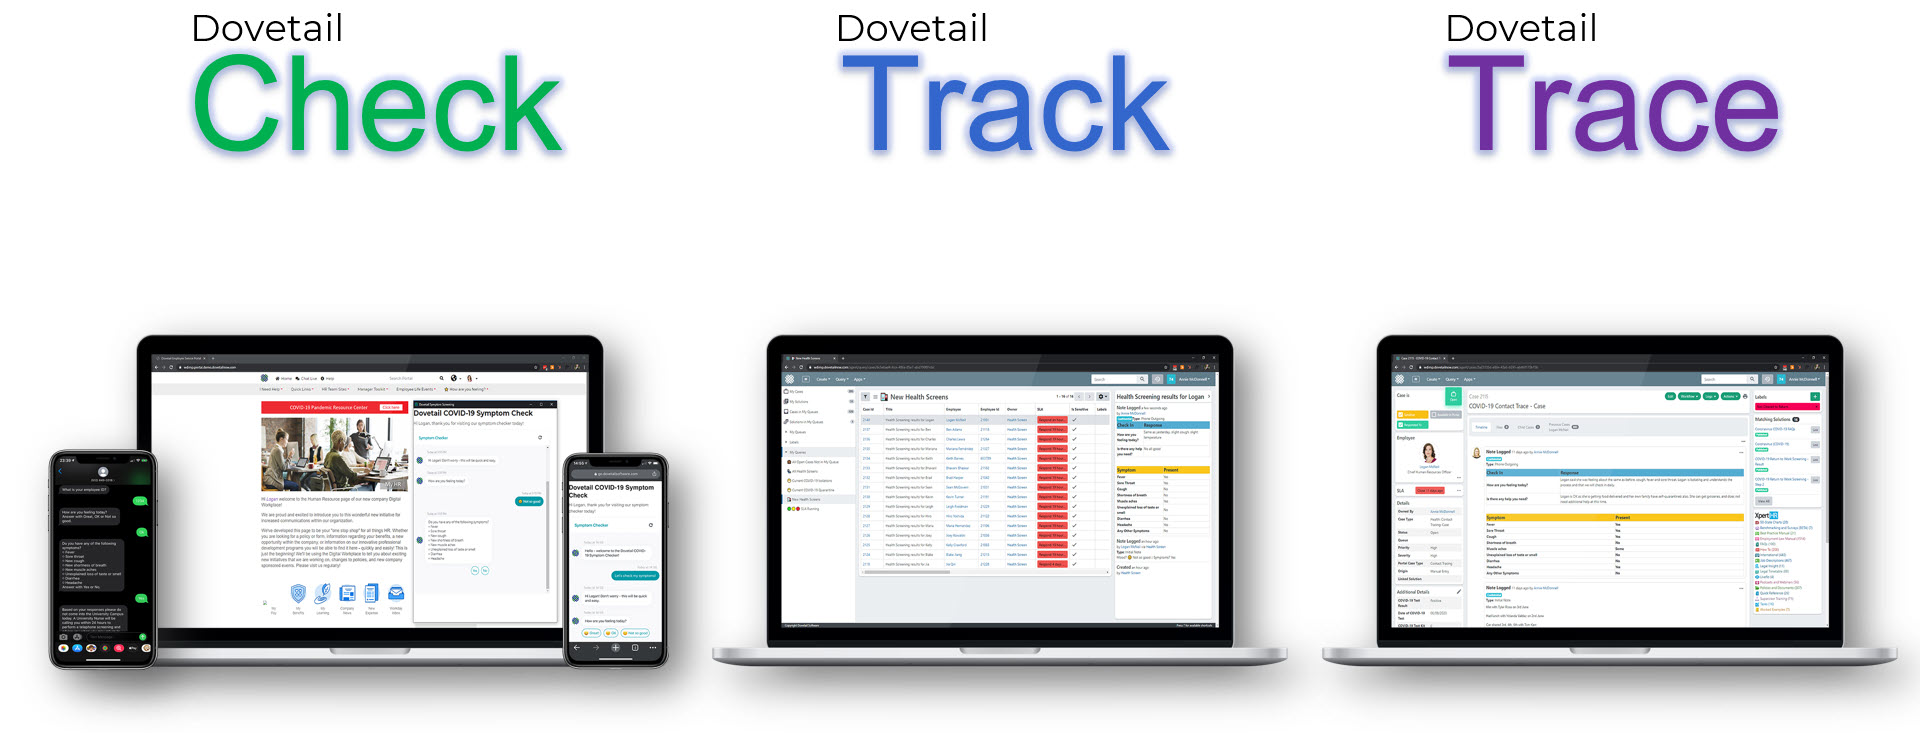 Dovetail Check Track Trace